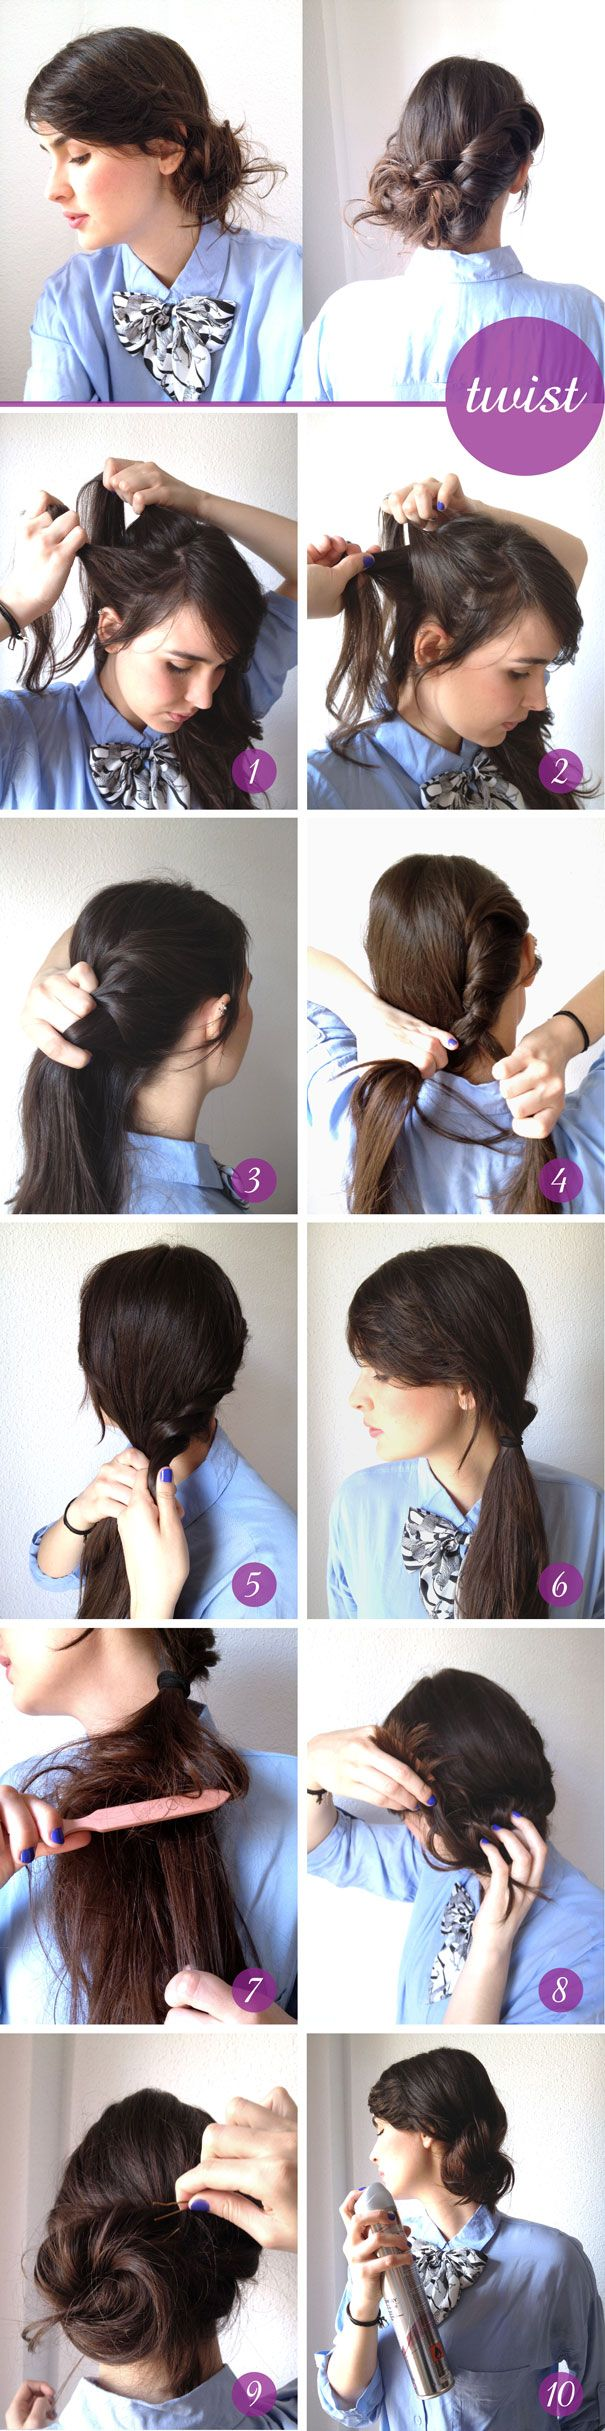 :)Hair Ideas, Hair Tutorials, Hairstyles, Long Hair, Twists Buns, Messy Buns, Hair Style, Updo, Side Buns